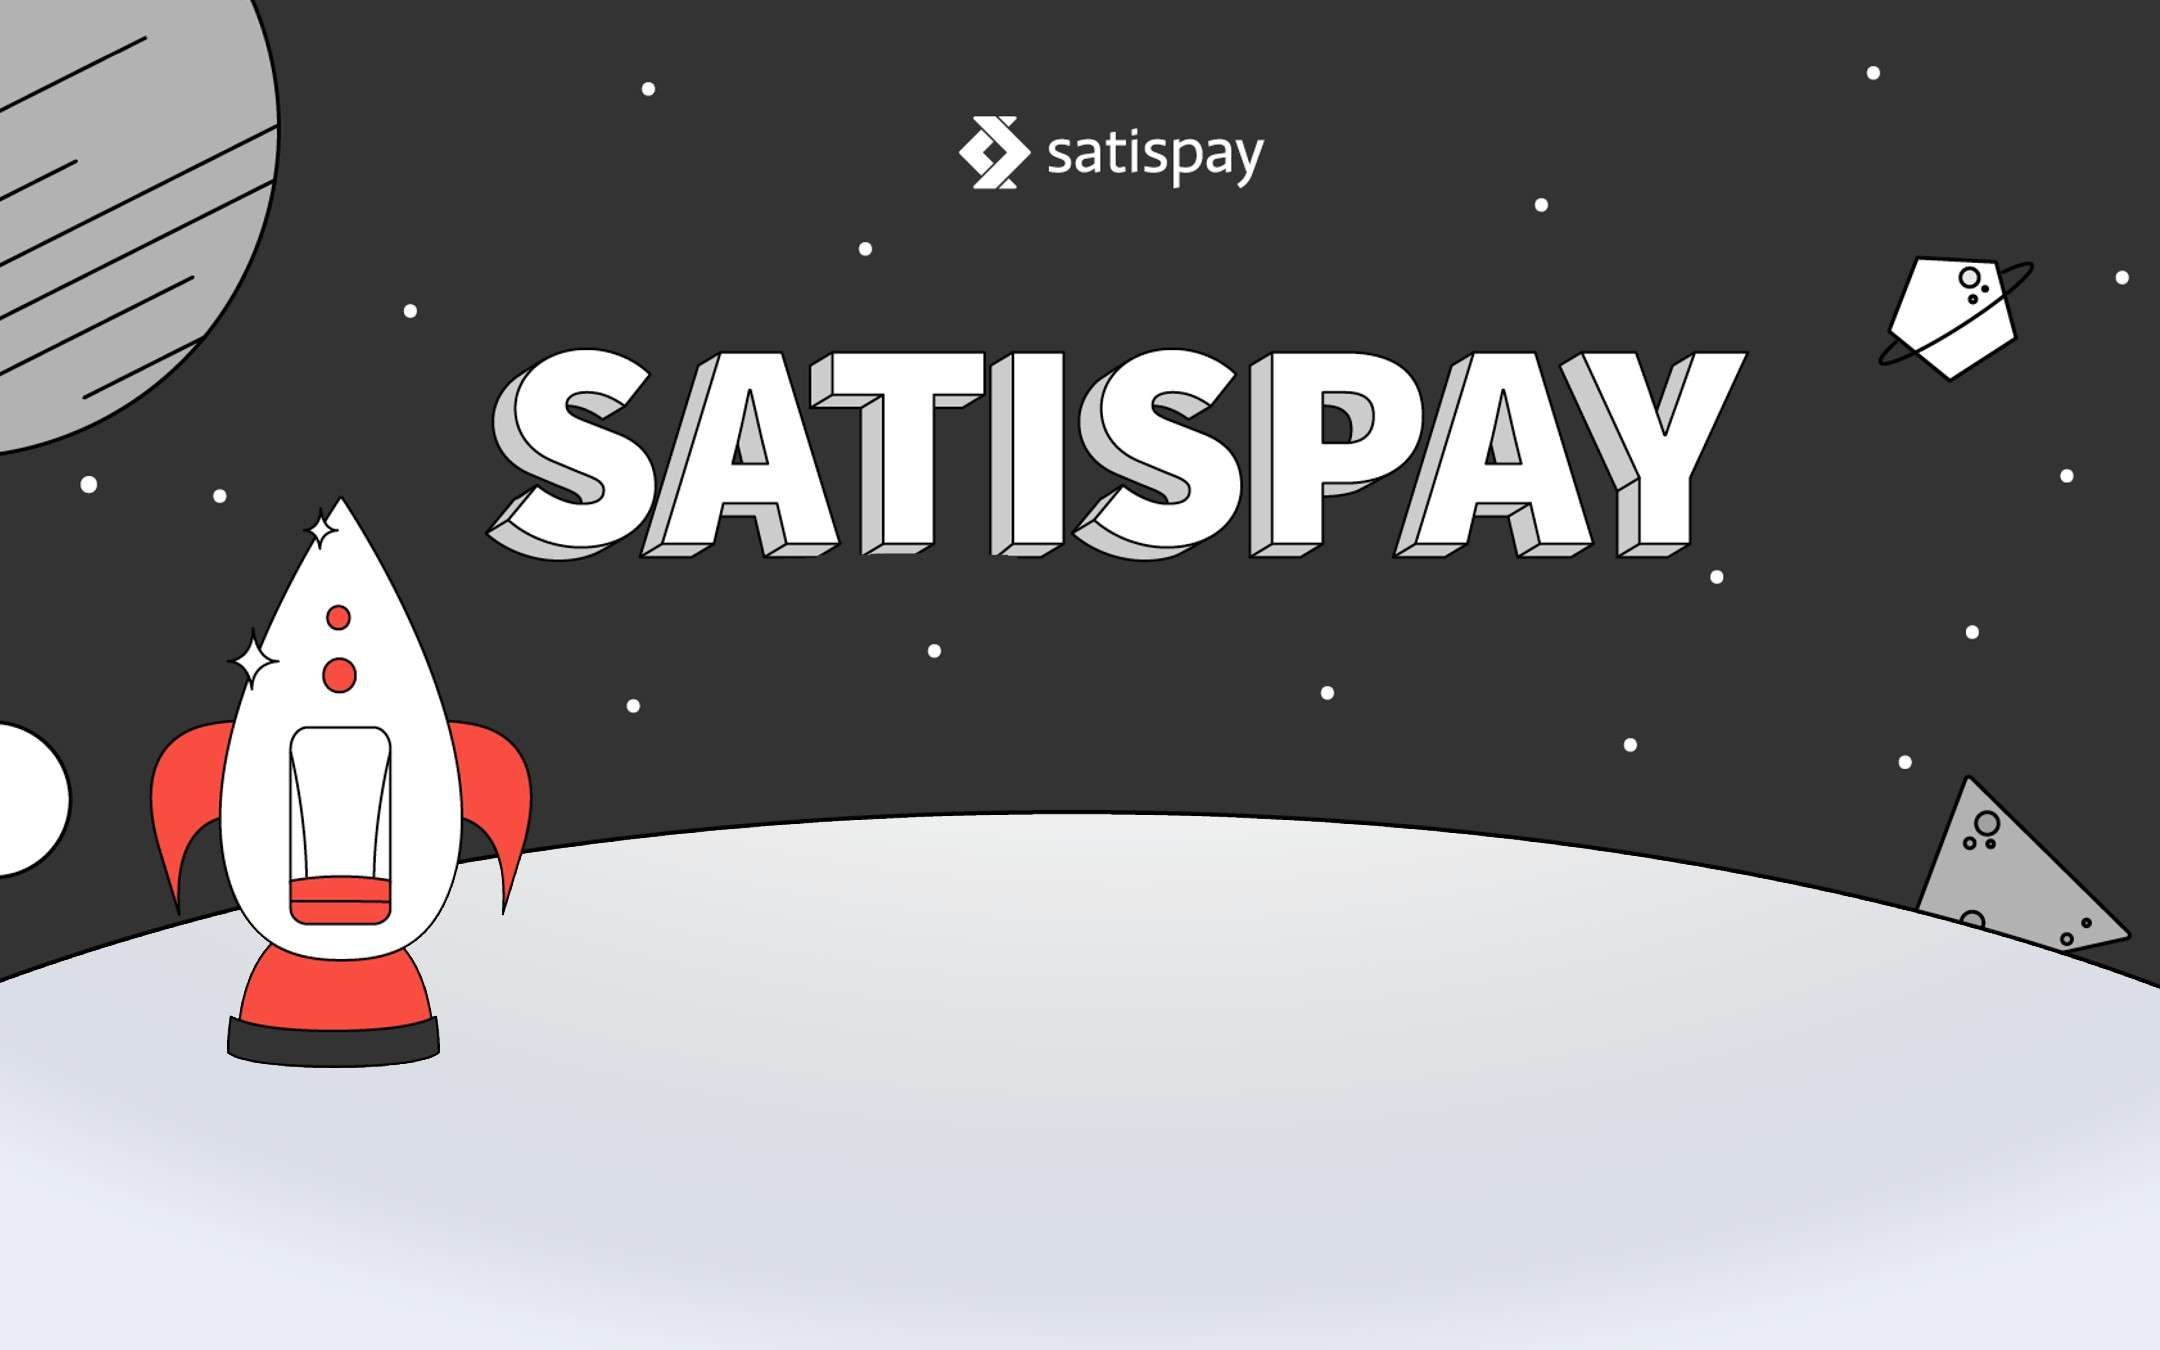 Satispay conquers TIM, Square and Tencent